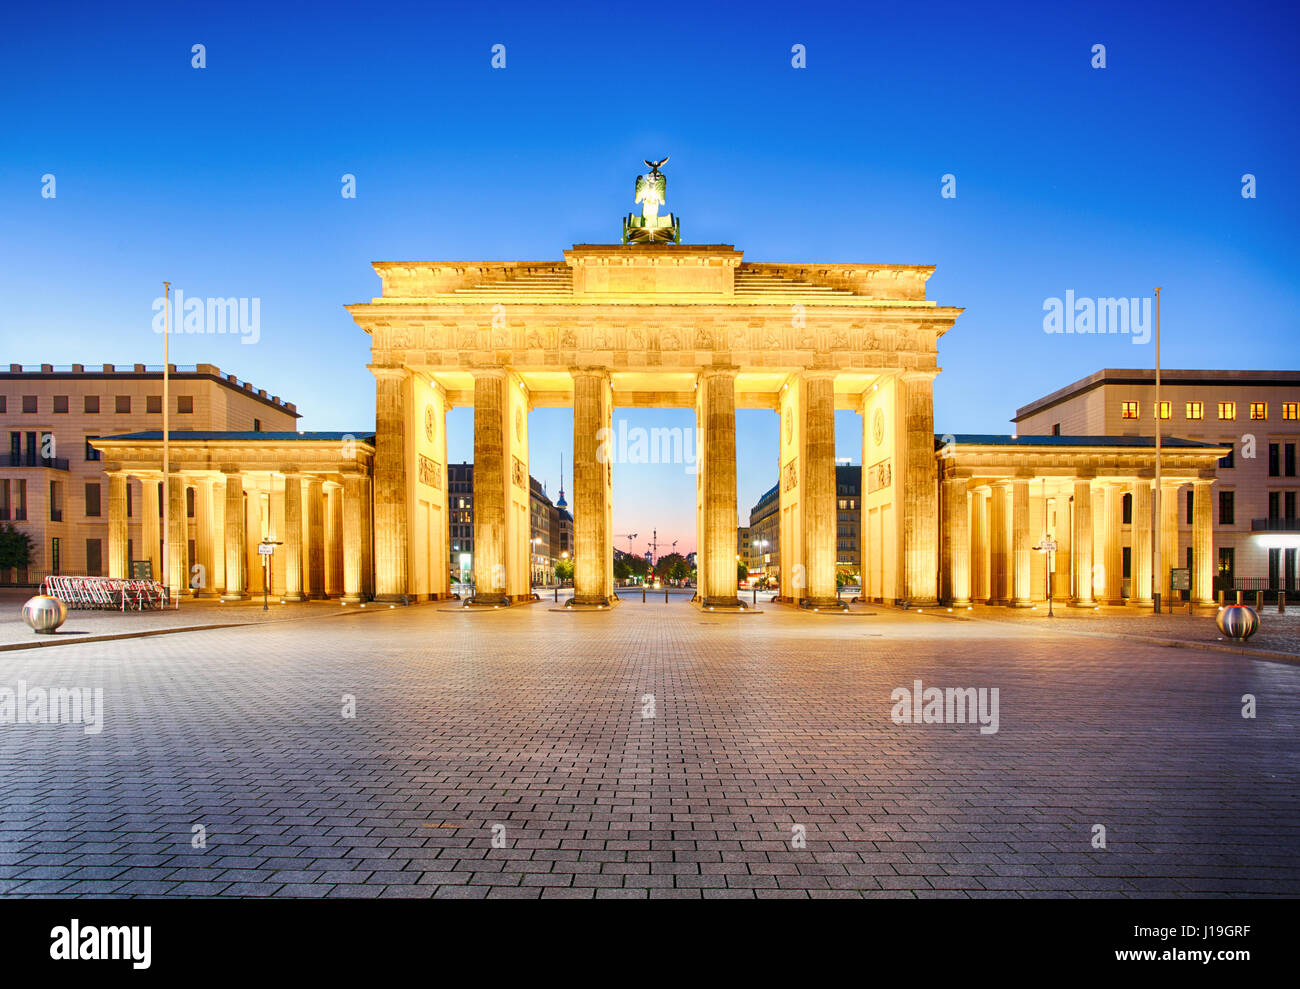 Porte de Brandebourg de Berlin, en allemand Photo Stock